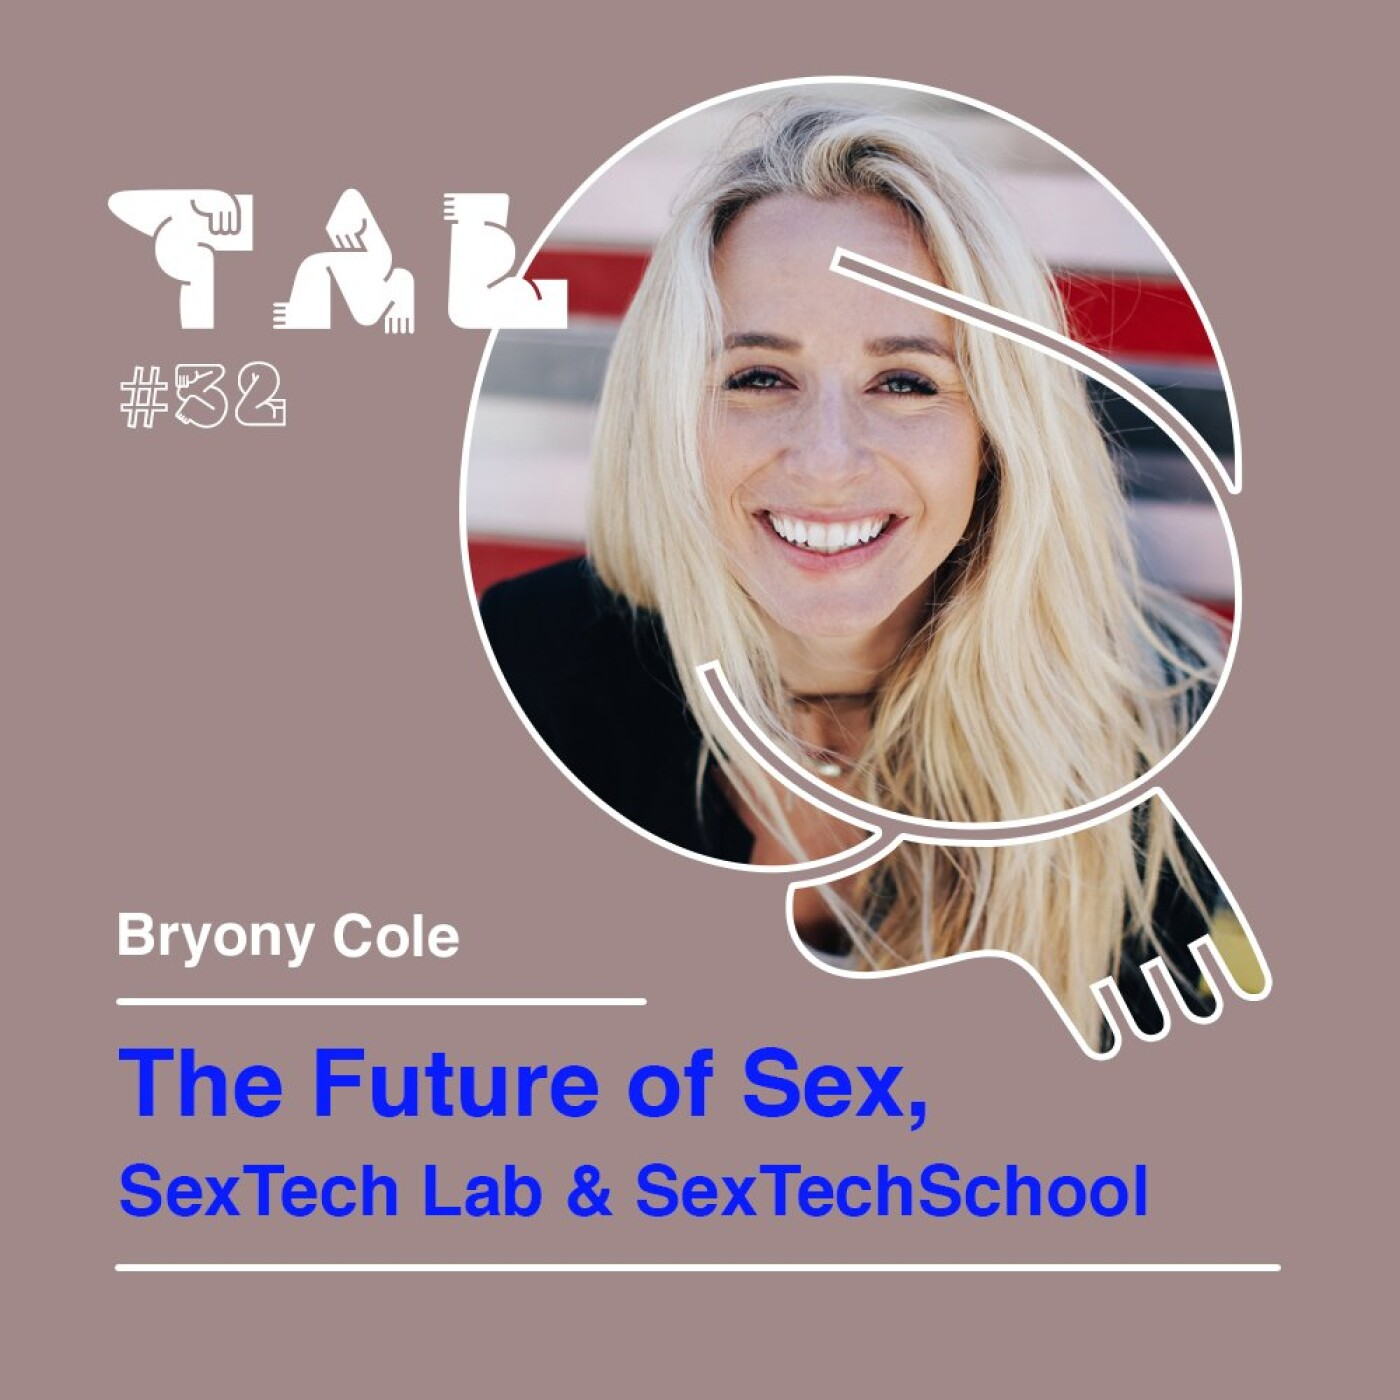 #32 - Bryony Cole : The Future of Sex, SexTech Lab & SexTech School